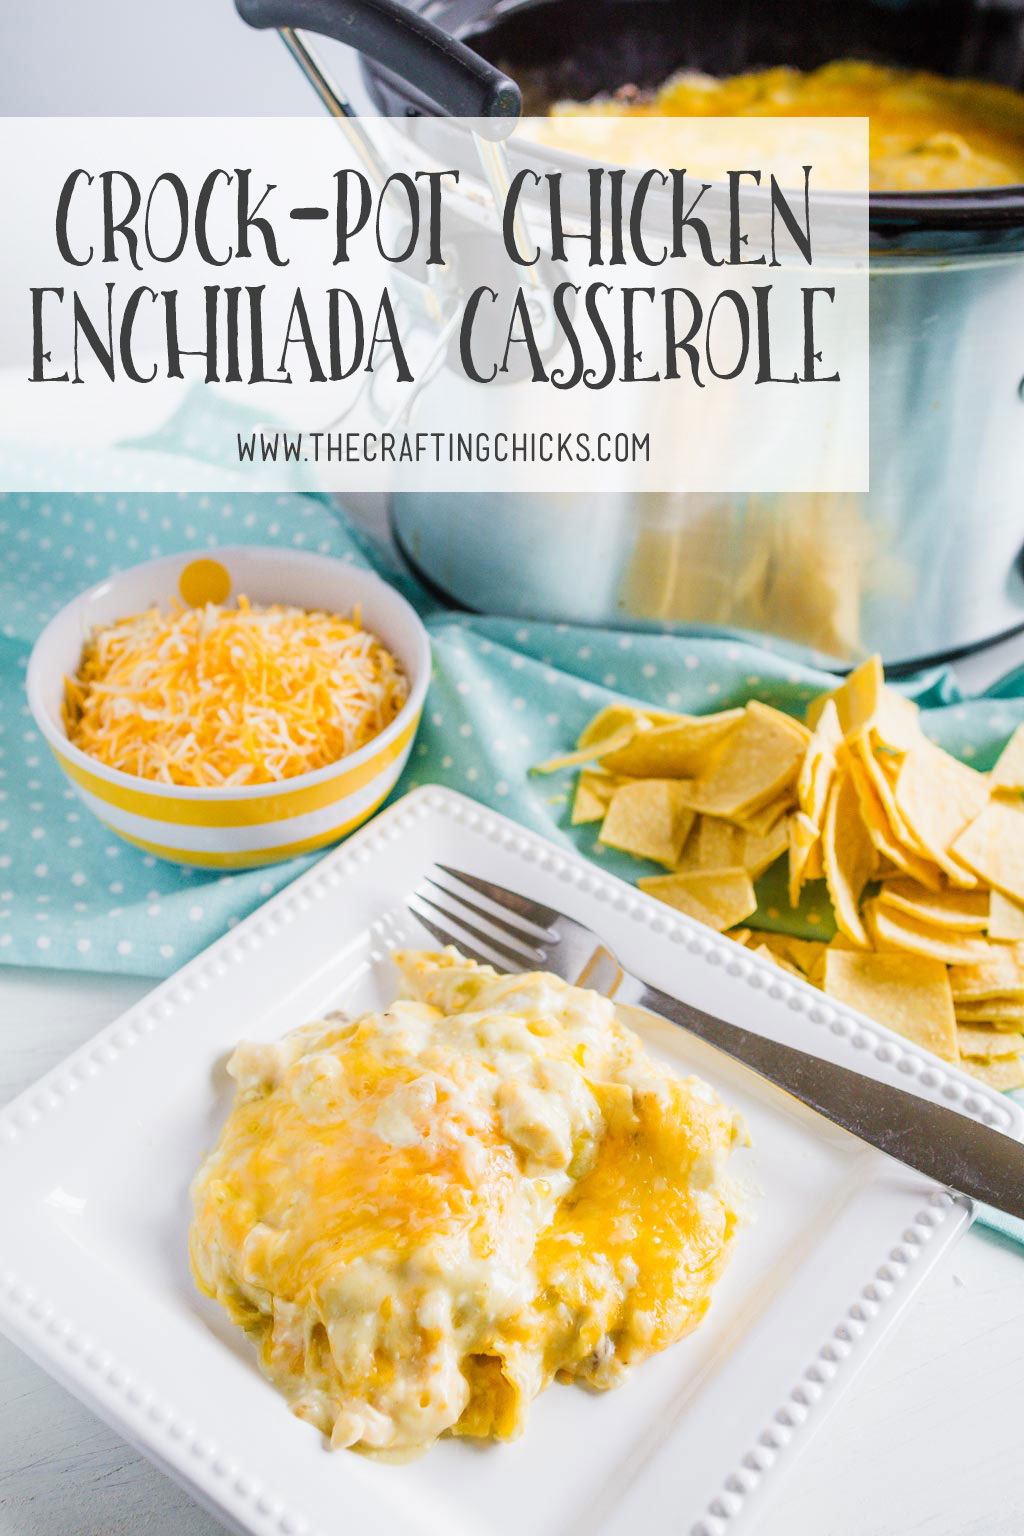 Crock-Pot Chicken Enchiladas